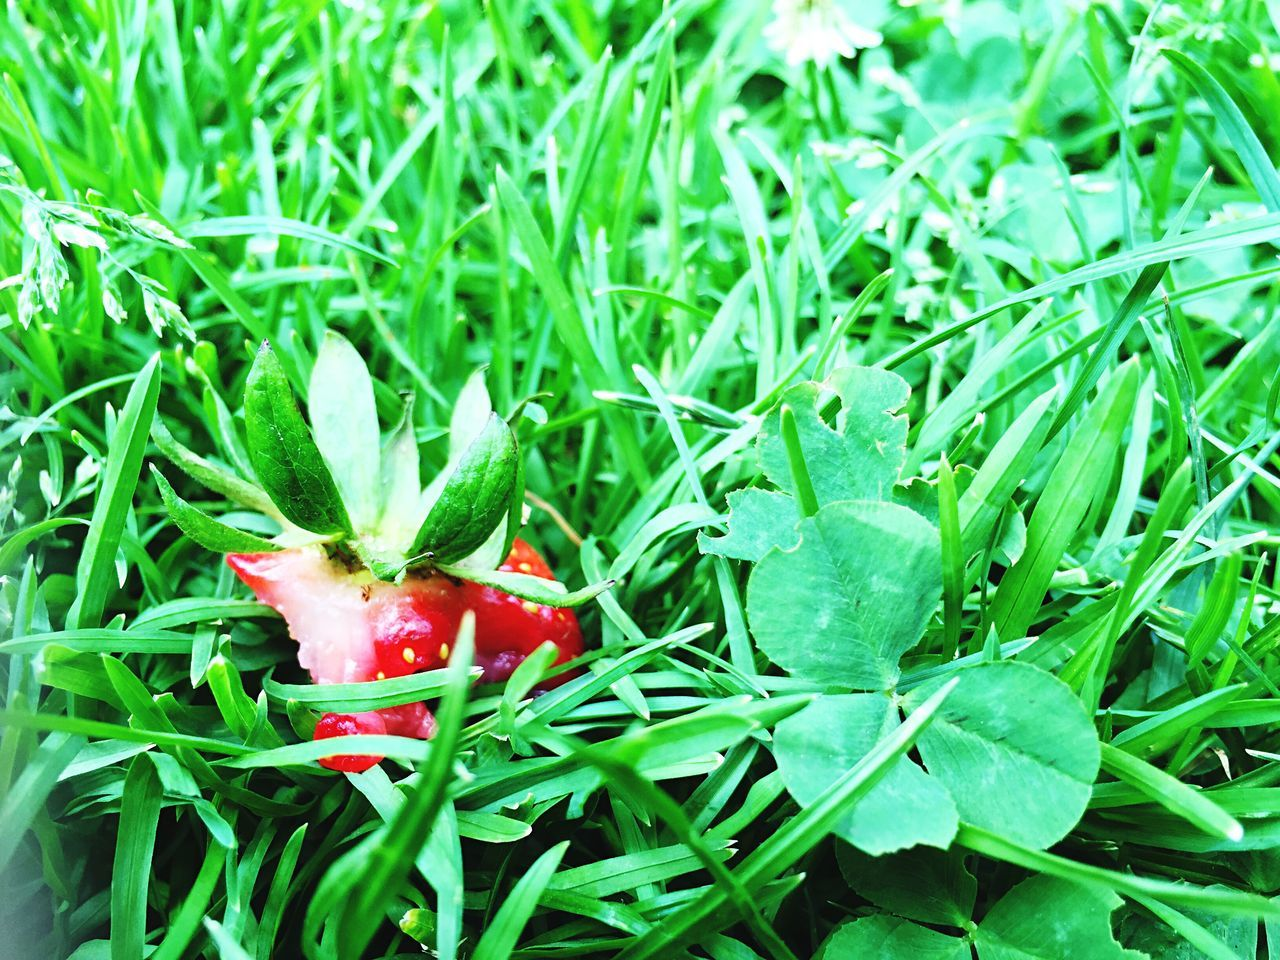 Strawberry Drop Green Park Nature Freshness Open Edit Nature On Your Doorstep Food Simple Beauty Capture The Moment Bold Neons, Bright Pastels The Essence Of Summer Walking Around IPhoneography Getting Inspired Fruit Enjoying Life Colors EyeEmFiveSenses Nature Photography Lovely EyeEm Best Shots Showcase June The Mix Up